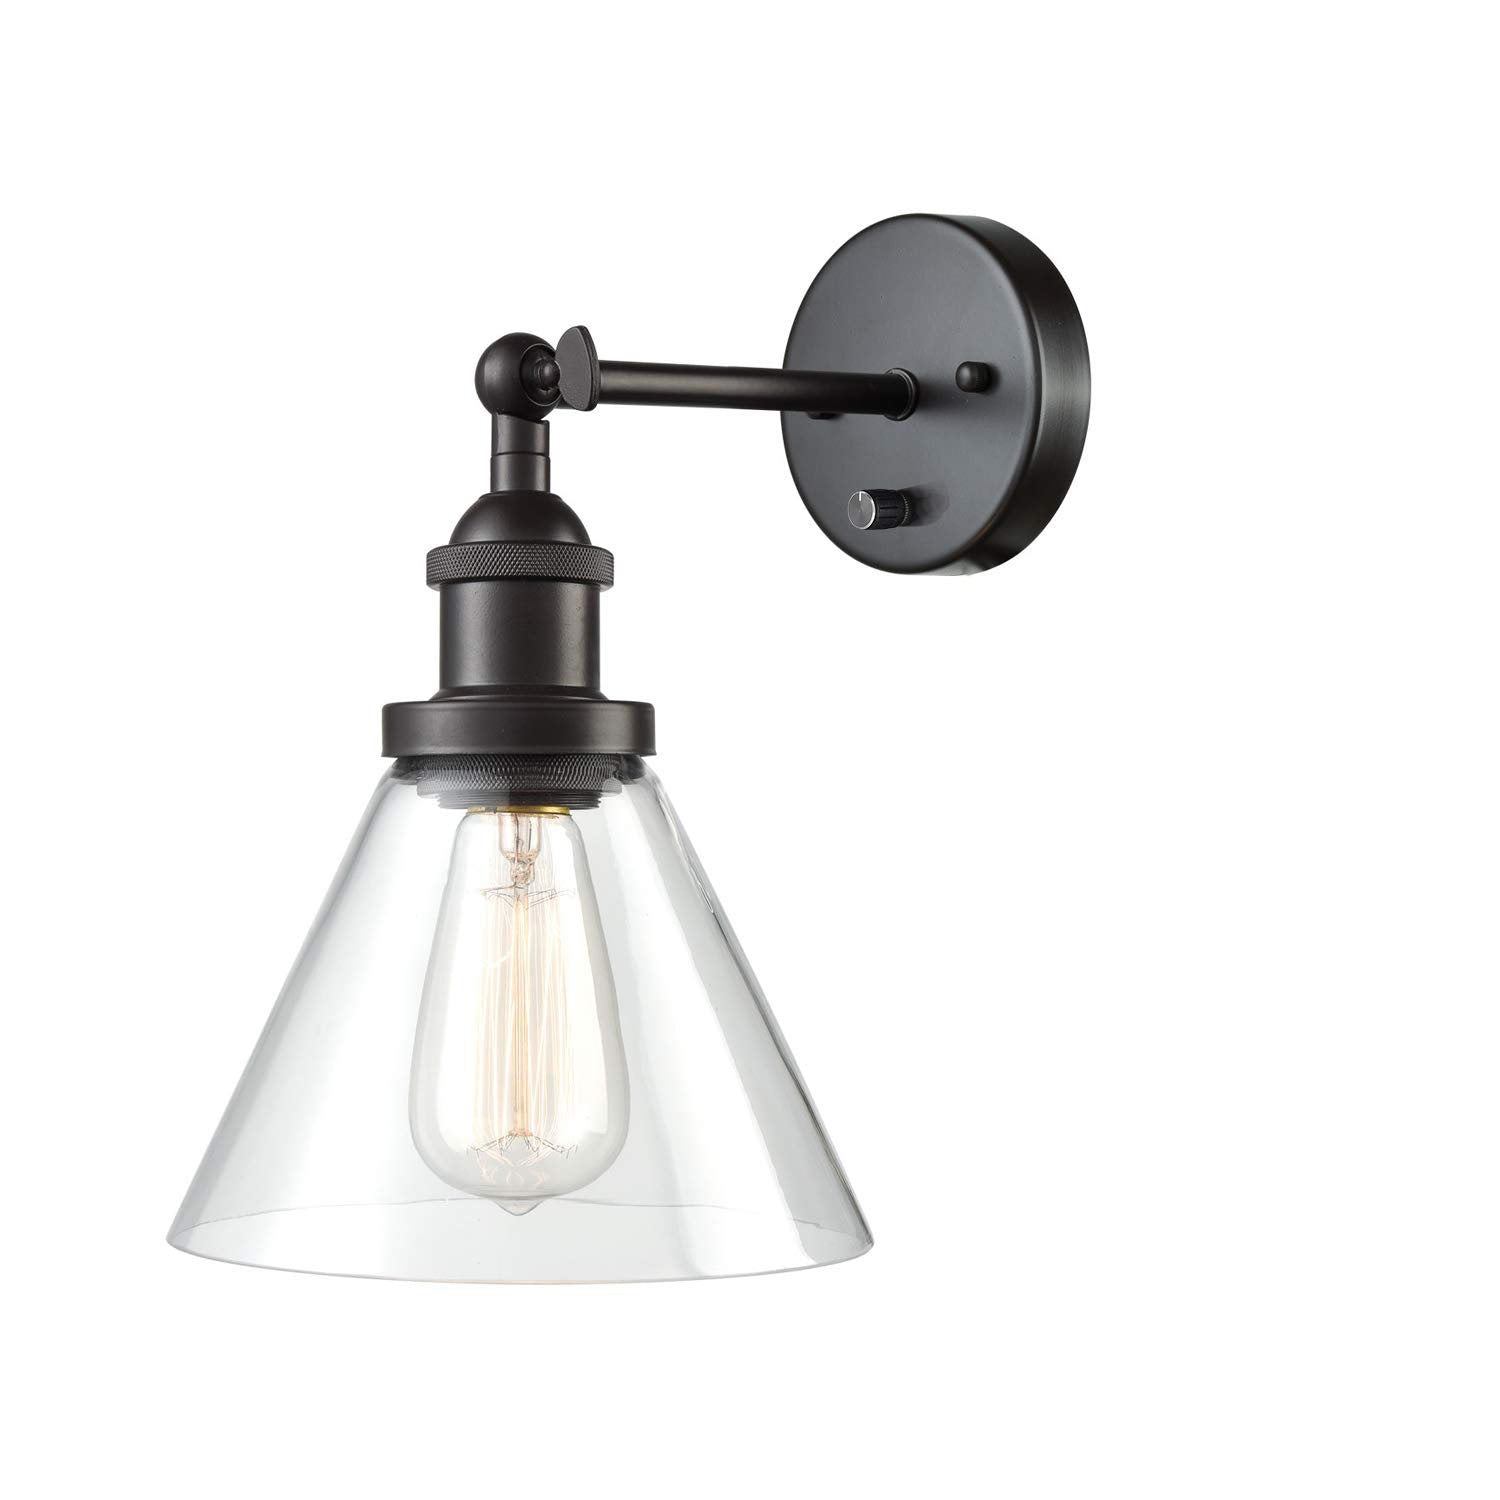 1/2-Lights Plug in On/Off Switch Wall Sconce with Funnel ...